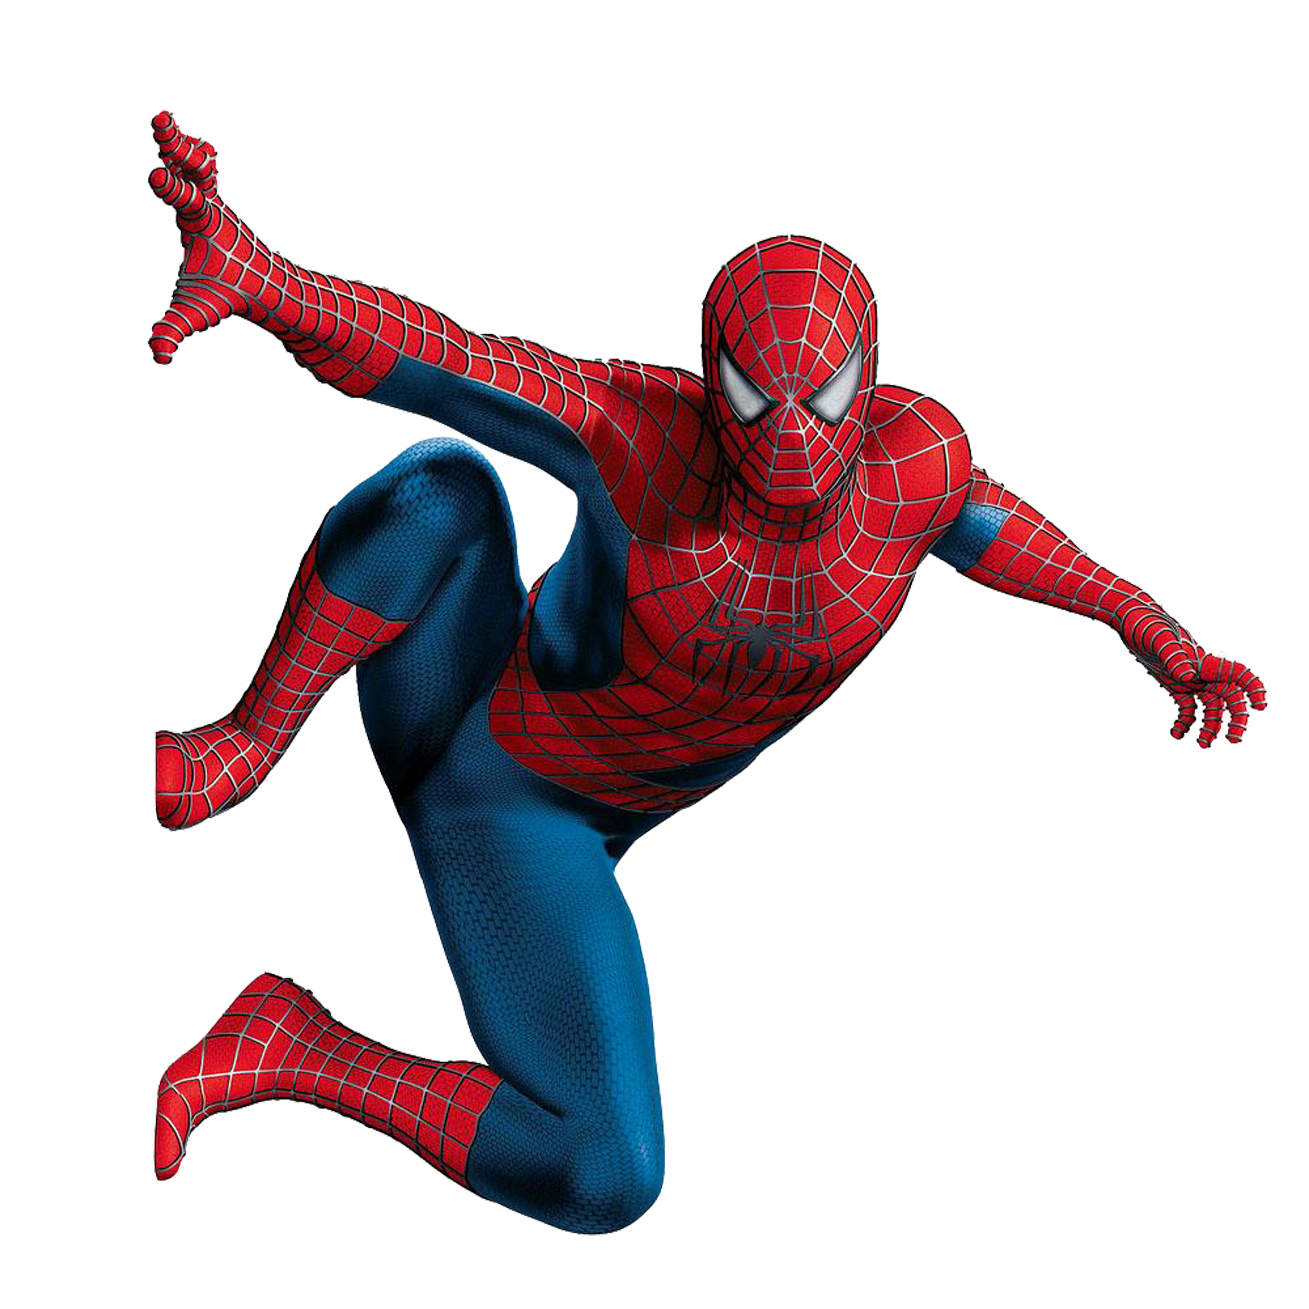 Spider Man Png Far From Home 4